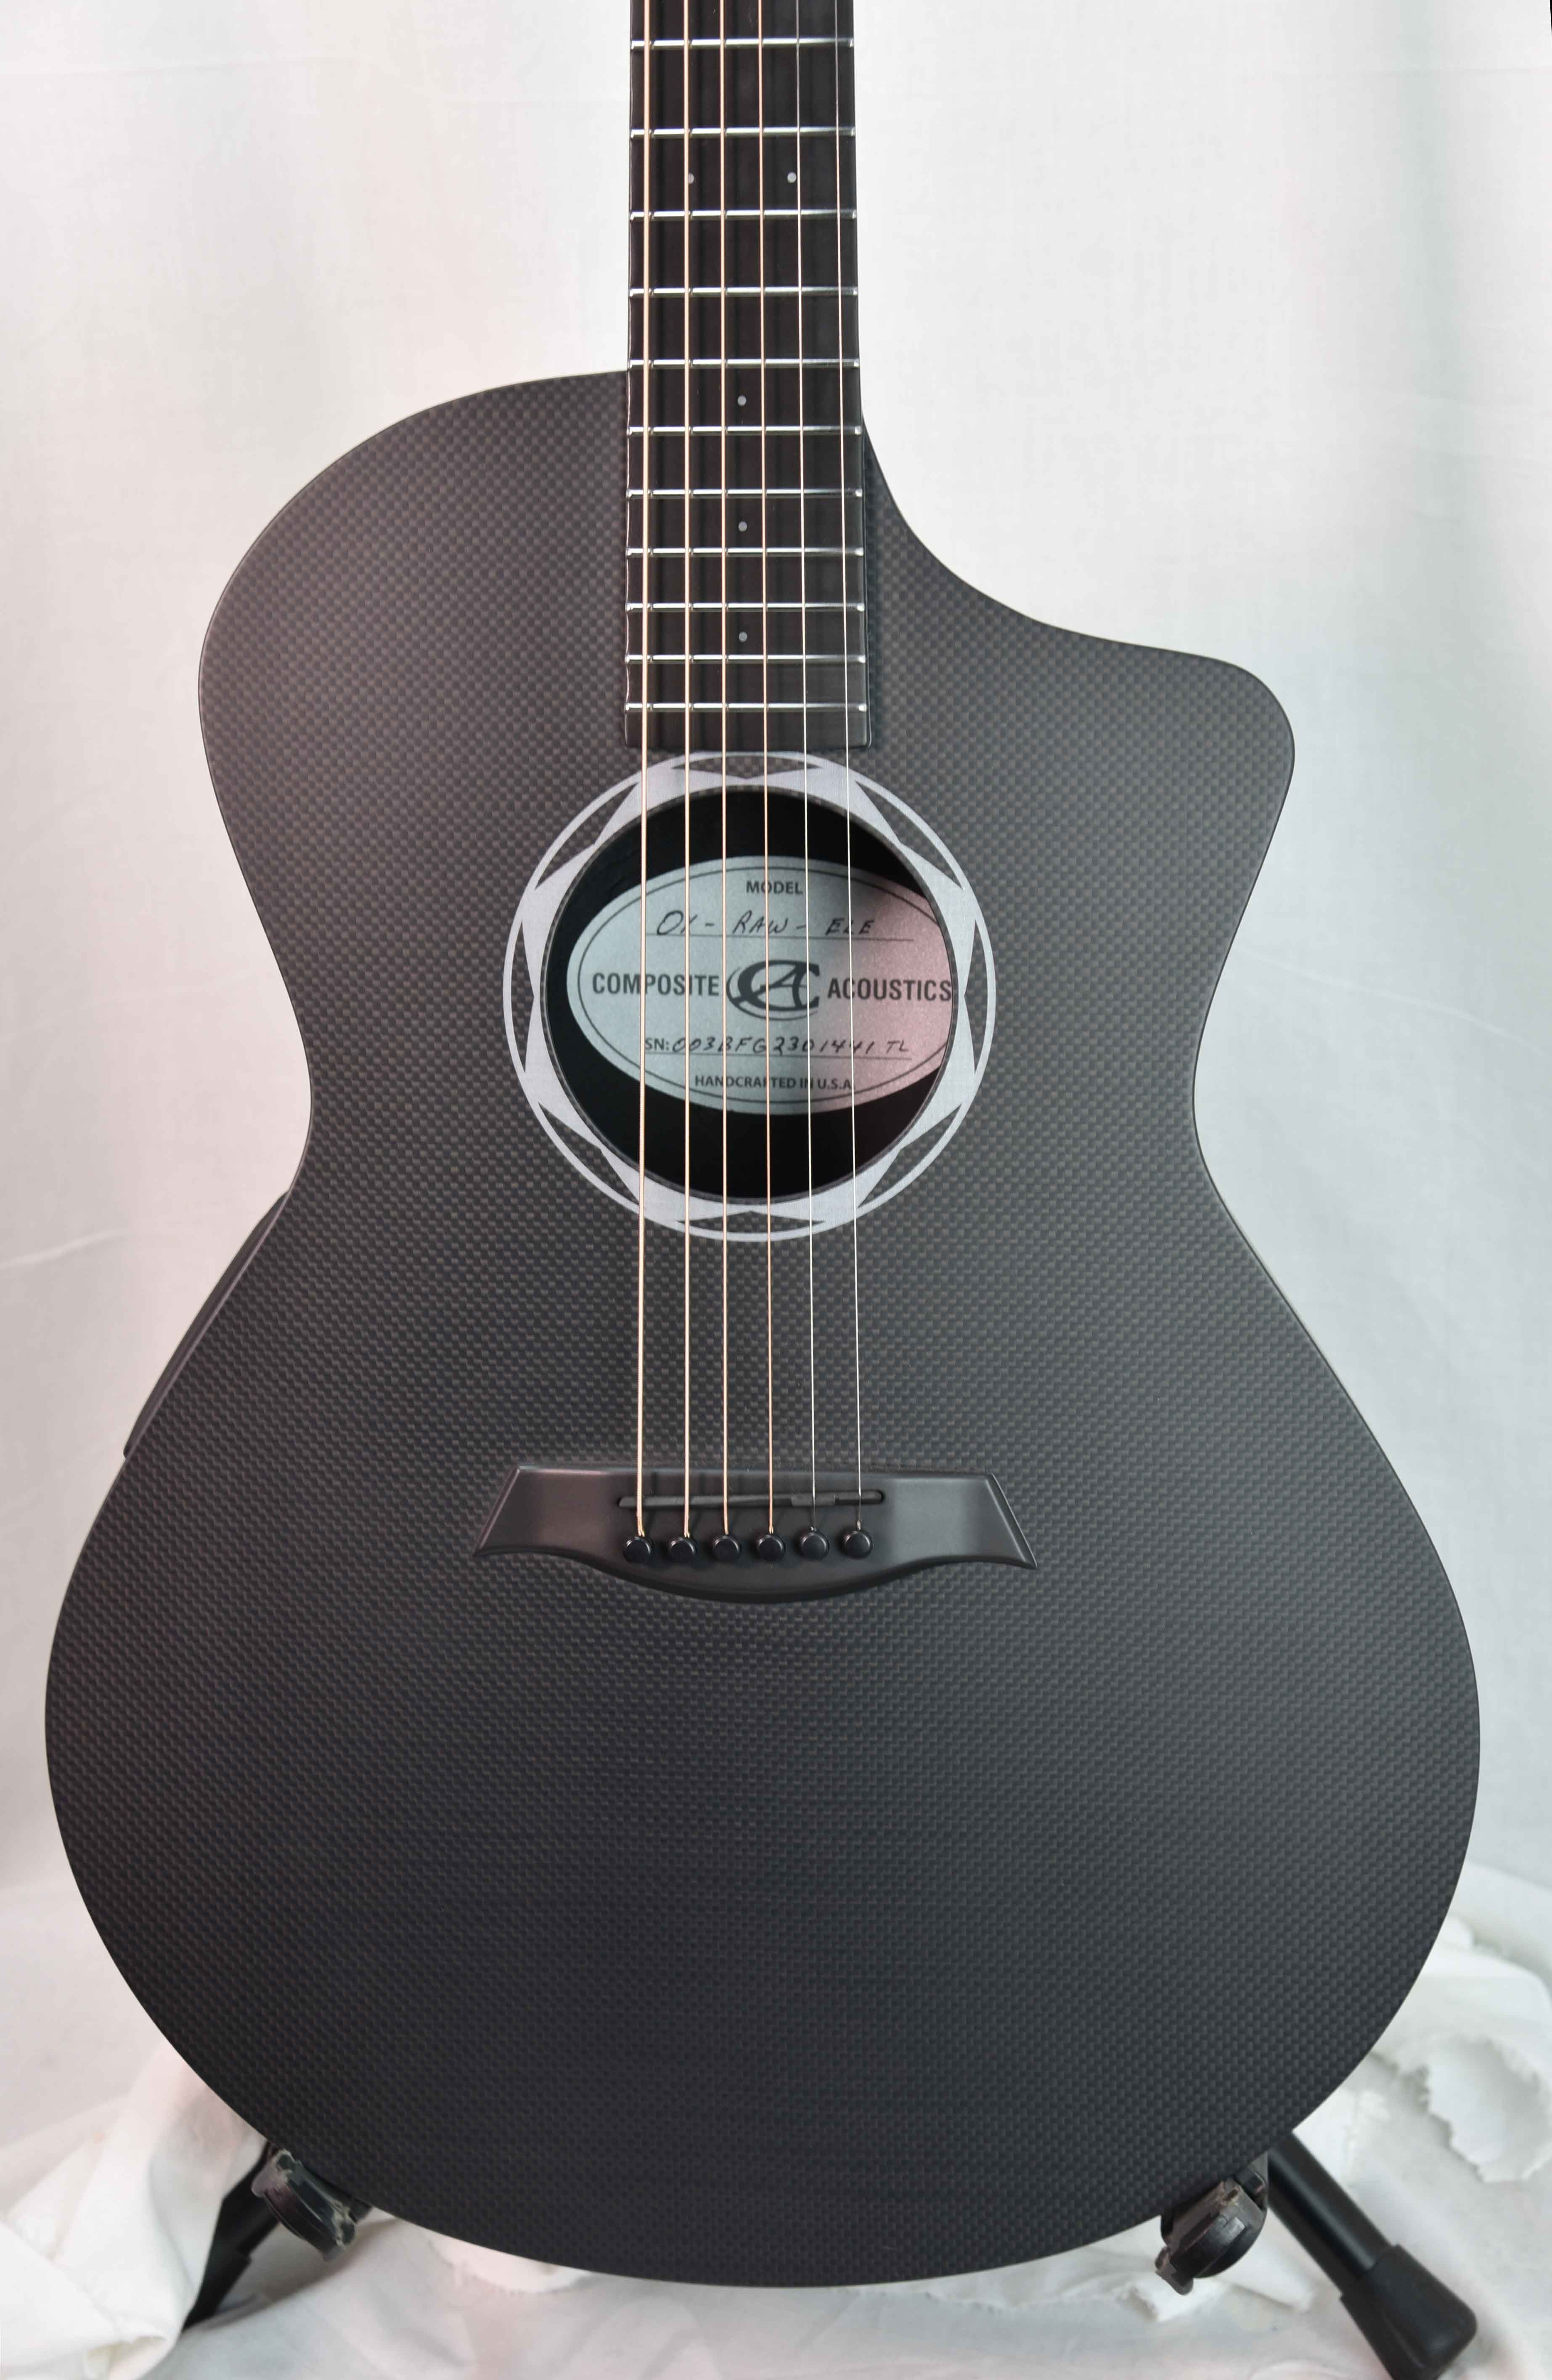 Composite Acoustics Ox Carbon W Raw Finish Westwood Music Tradition Since 1947 Guitar Inlay Acoustic Guitar Black Acoustic Guitar